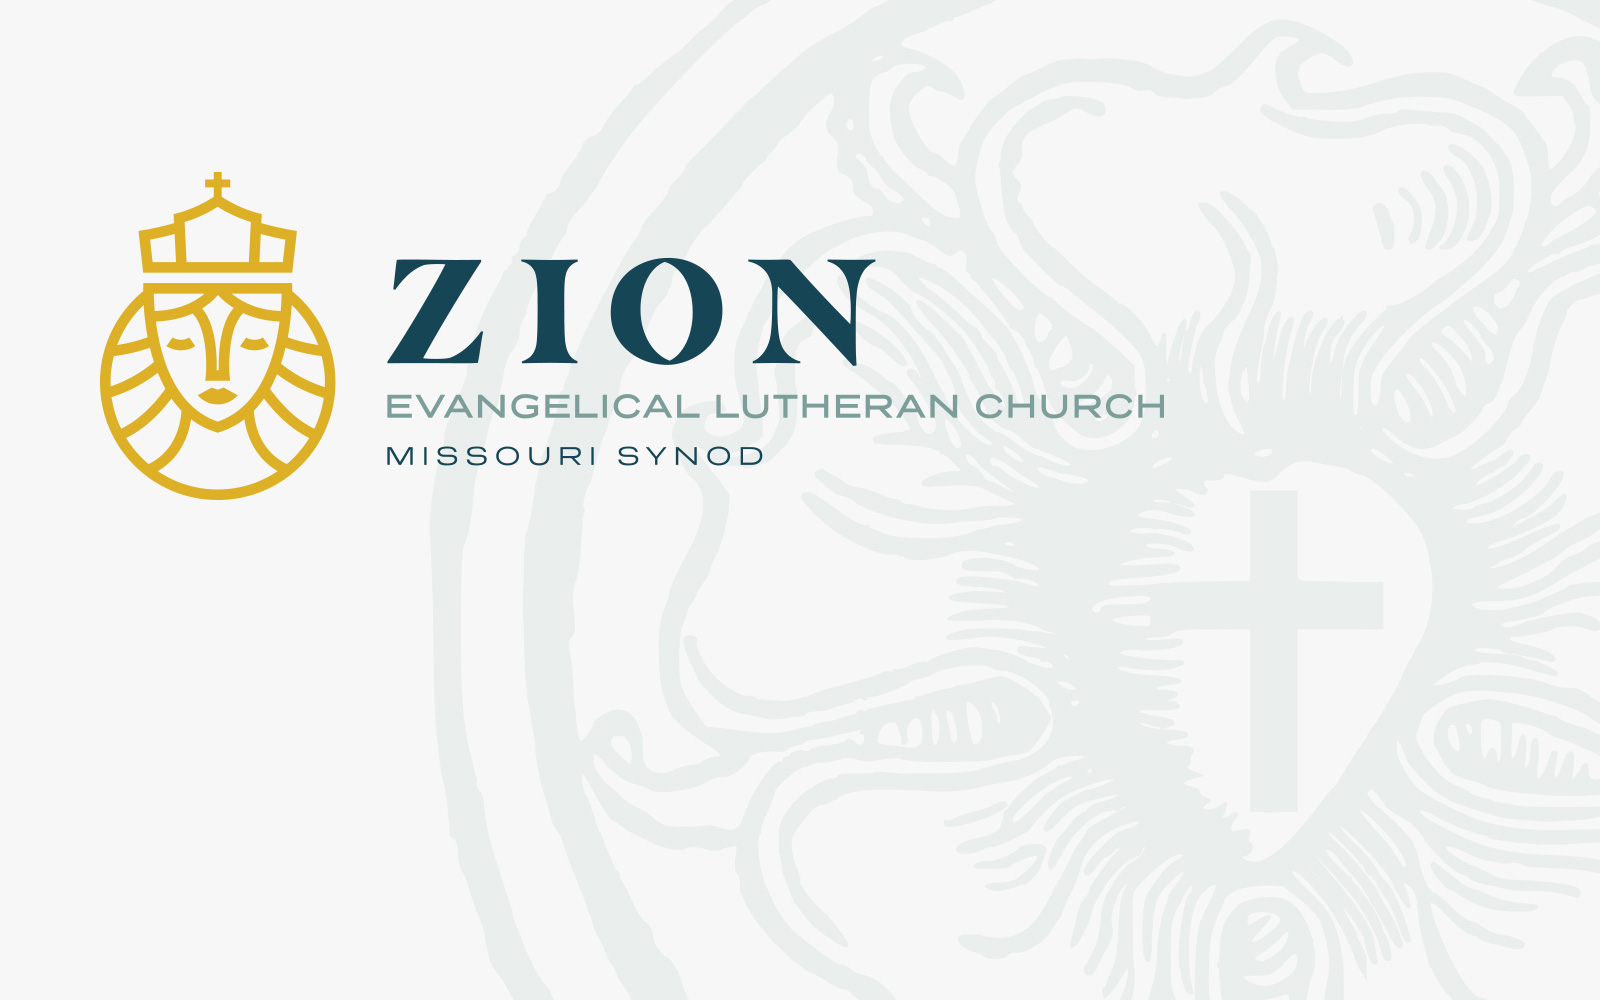 Zion-Church-SLO-Branding-00-cover-logo